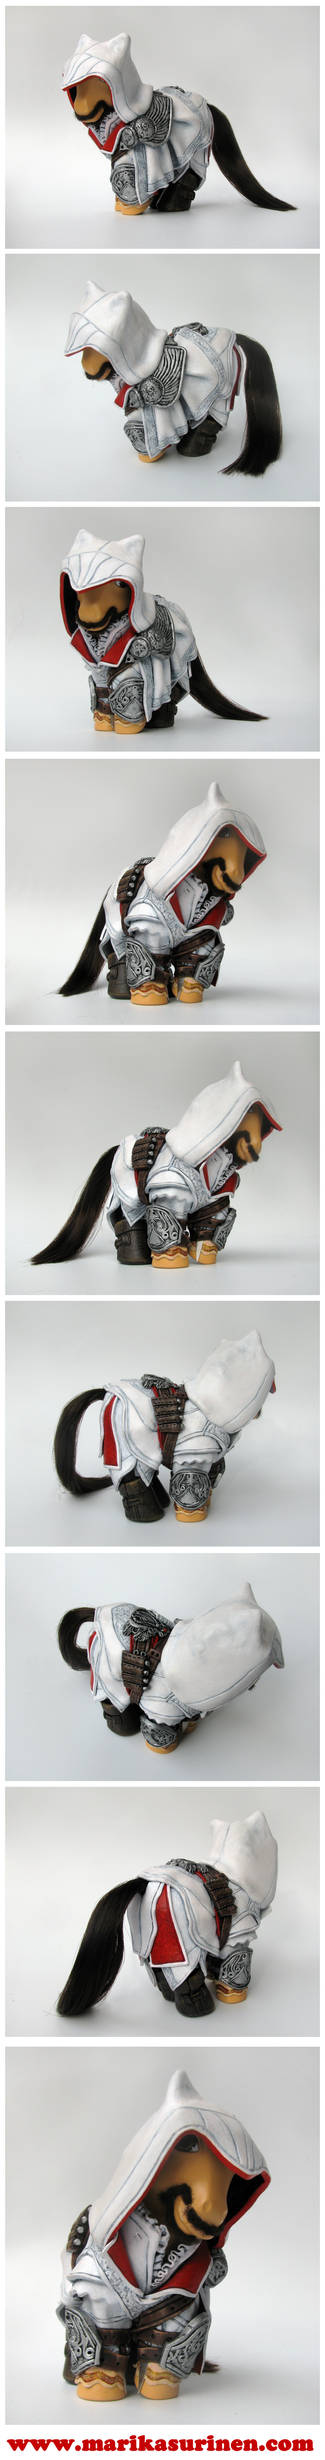 My Little Ezio Auditore